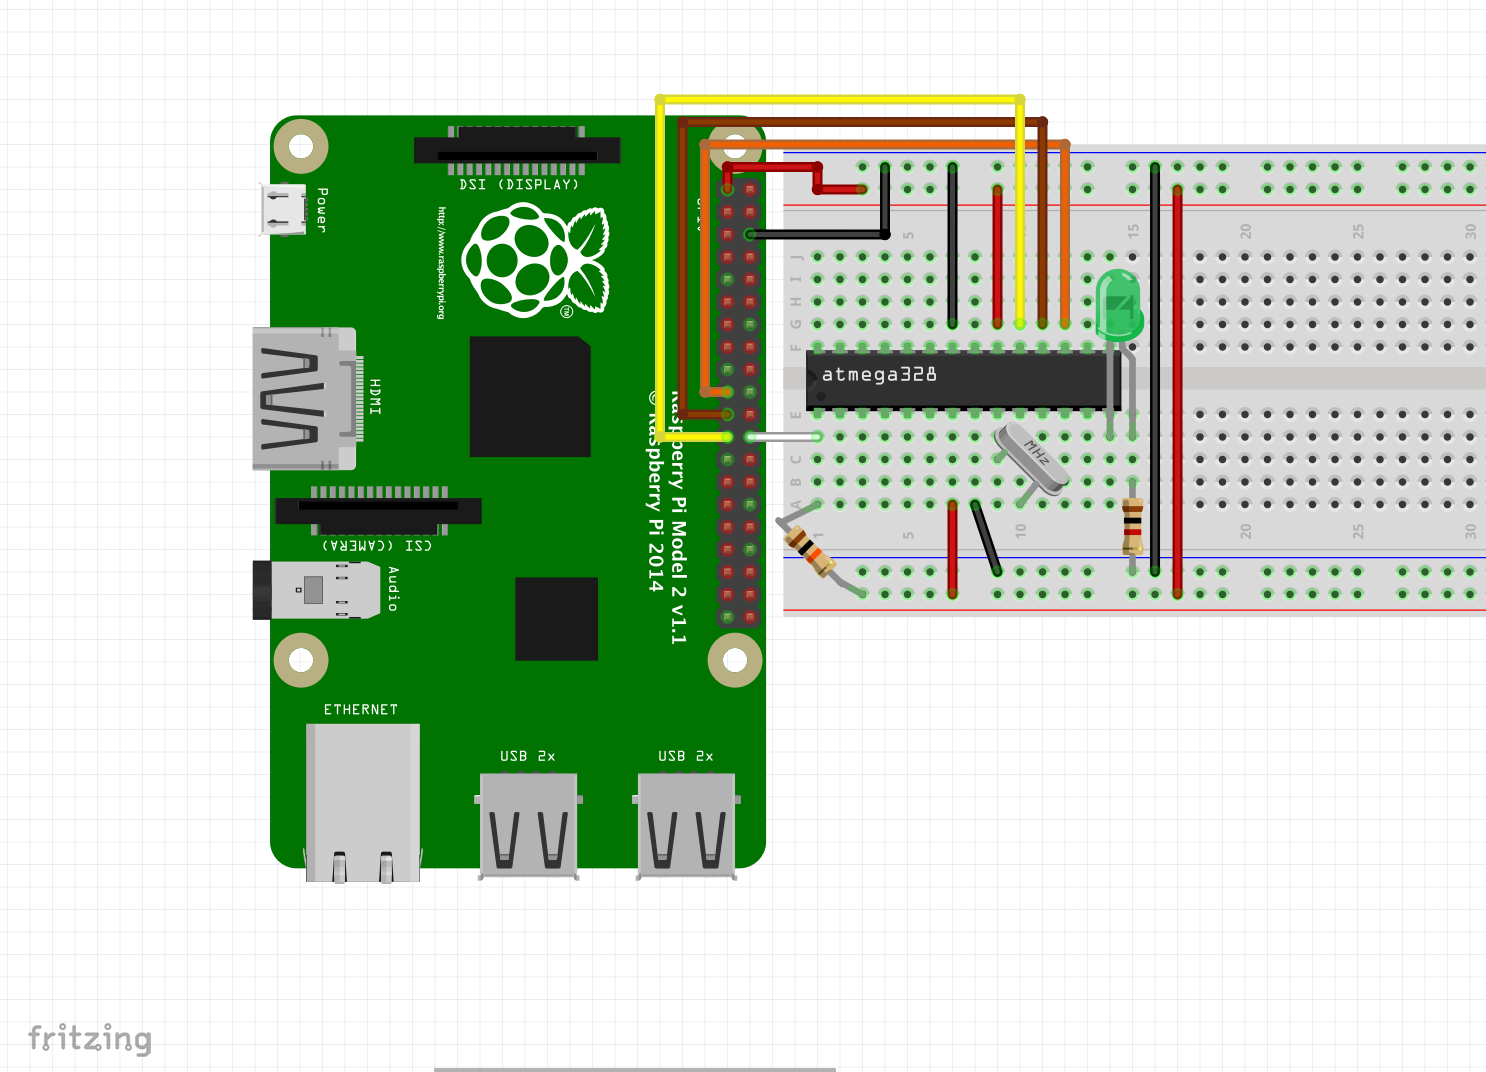 Connecting an ATMEGA328P to a Raspberry Pi